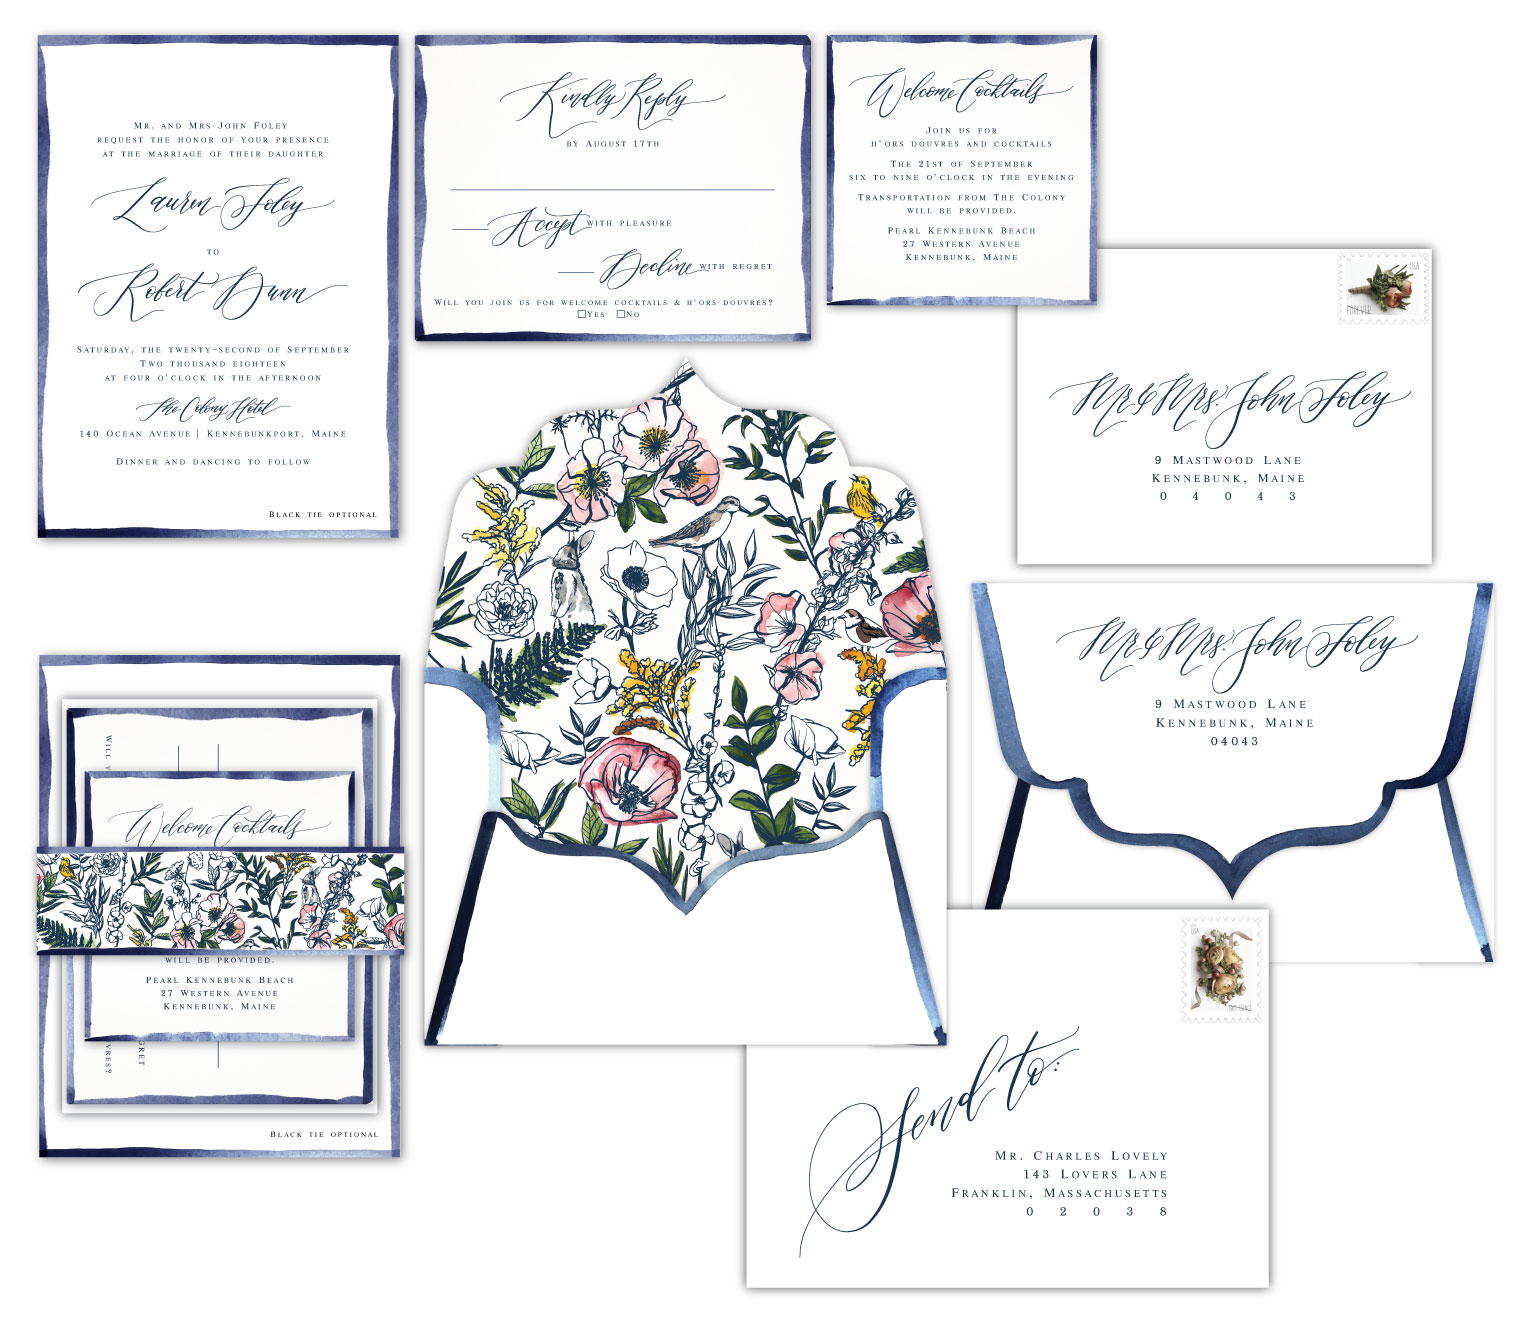 wedding invitation design mockup